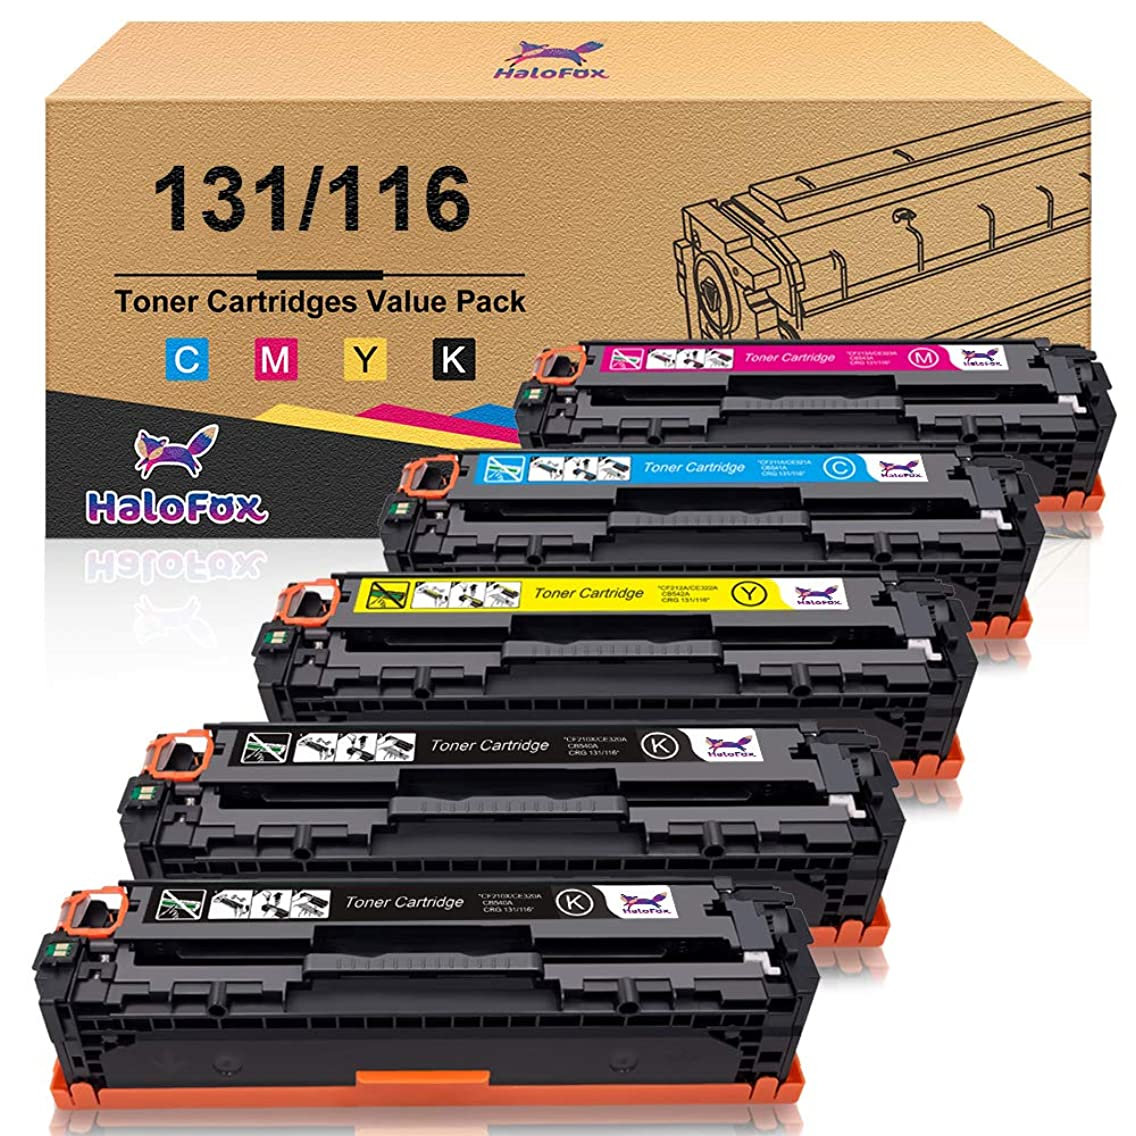 HaloFox Compatible Toner Cartridge Replacement for Canon 131 131H 116 imageClass MF624Cw MF628Cw MF8230Cn MF8280Cw LBP7100Cn for HP 131A 131X (Black, Cyan, Yellow, Magenta, 5 Pack)